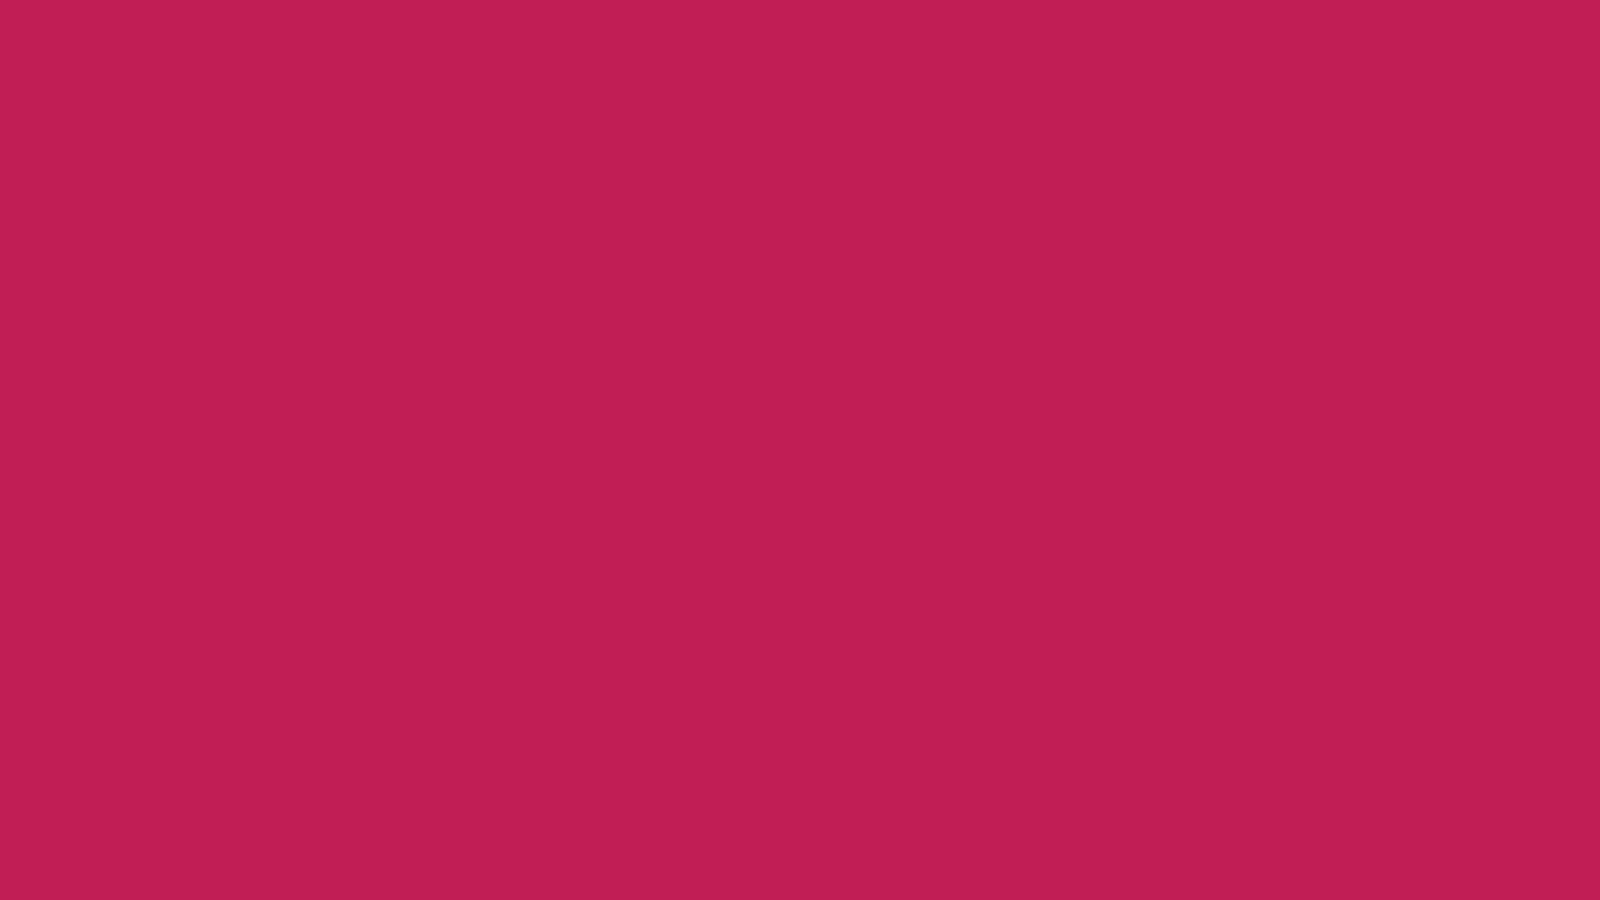 1600x900 Rose Red Solid Color Background